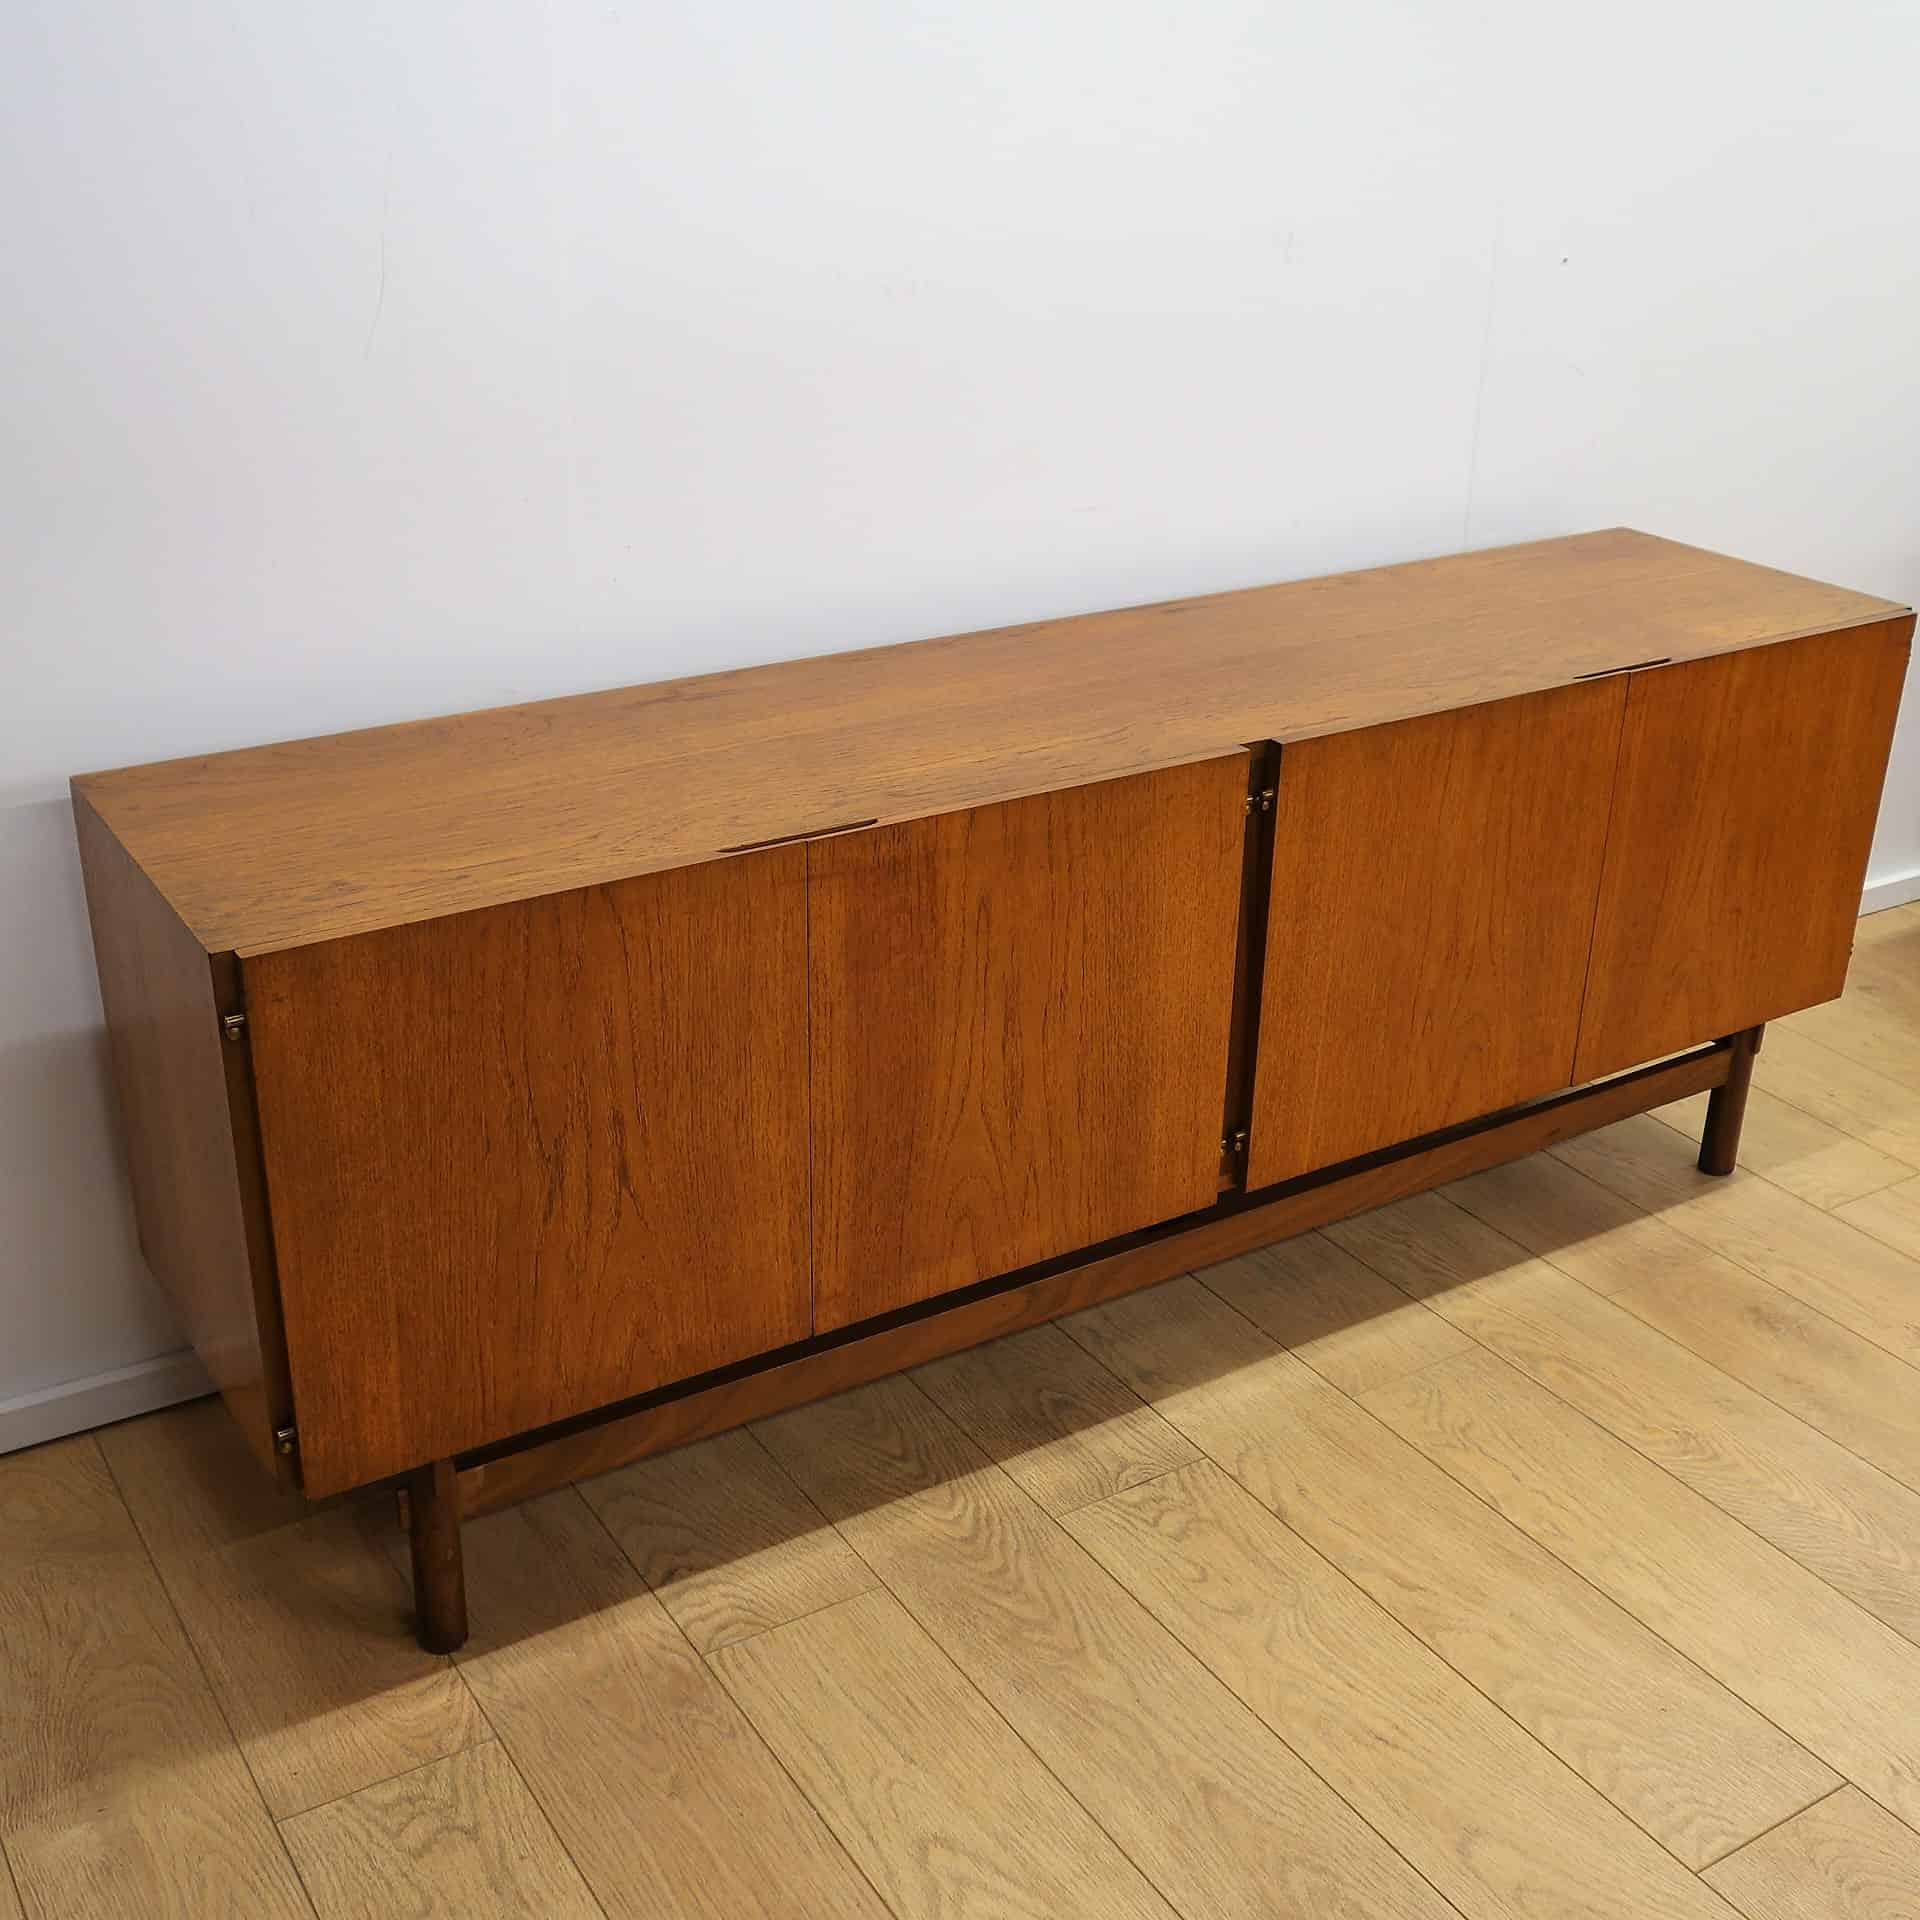 Parrish Sideboards With Regard To Well Known 1960s Teak Sideboardvanson – Mark Parrish Mid Century Modern (View 5 of 20)